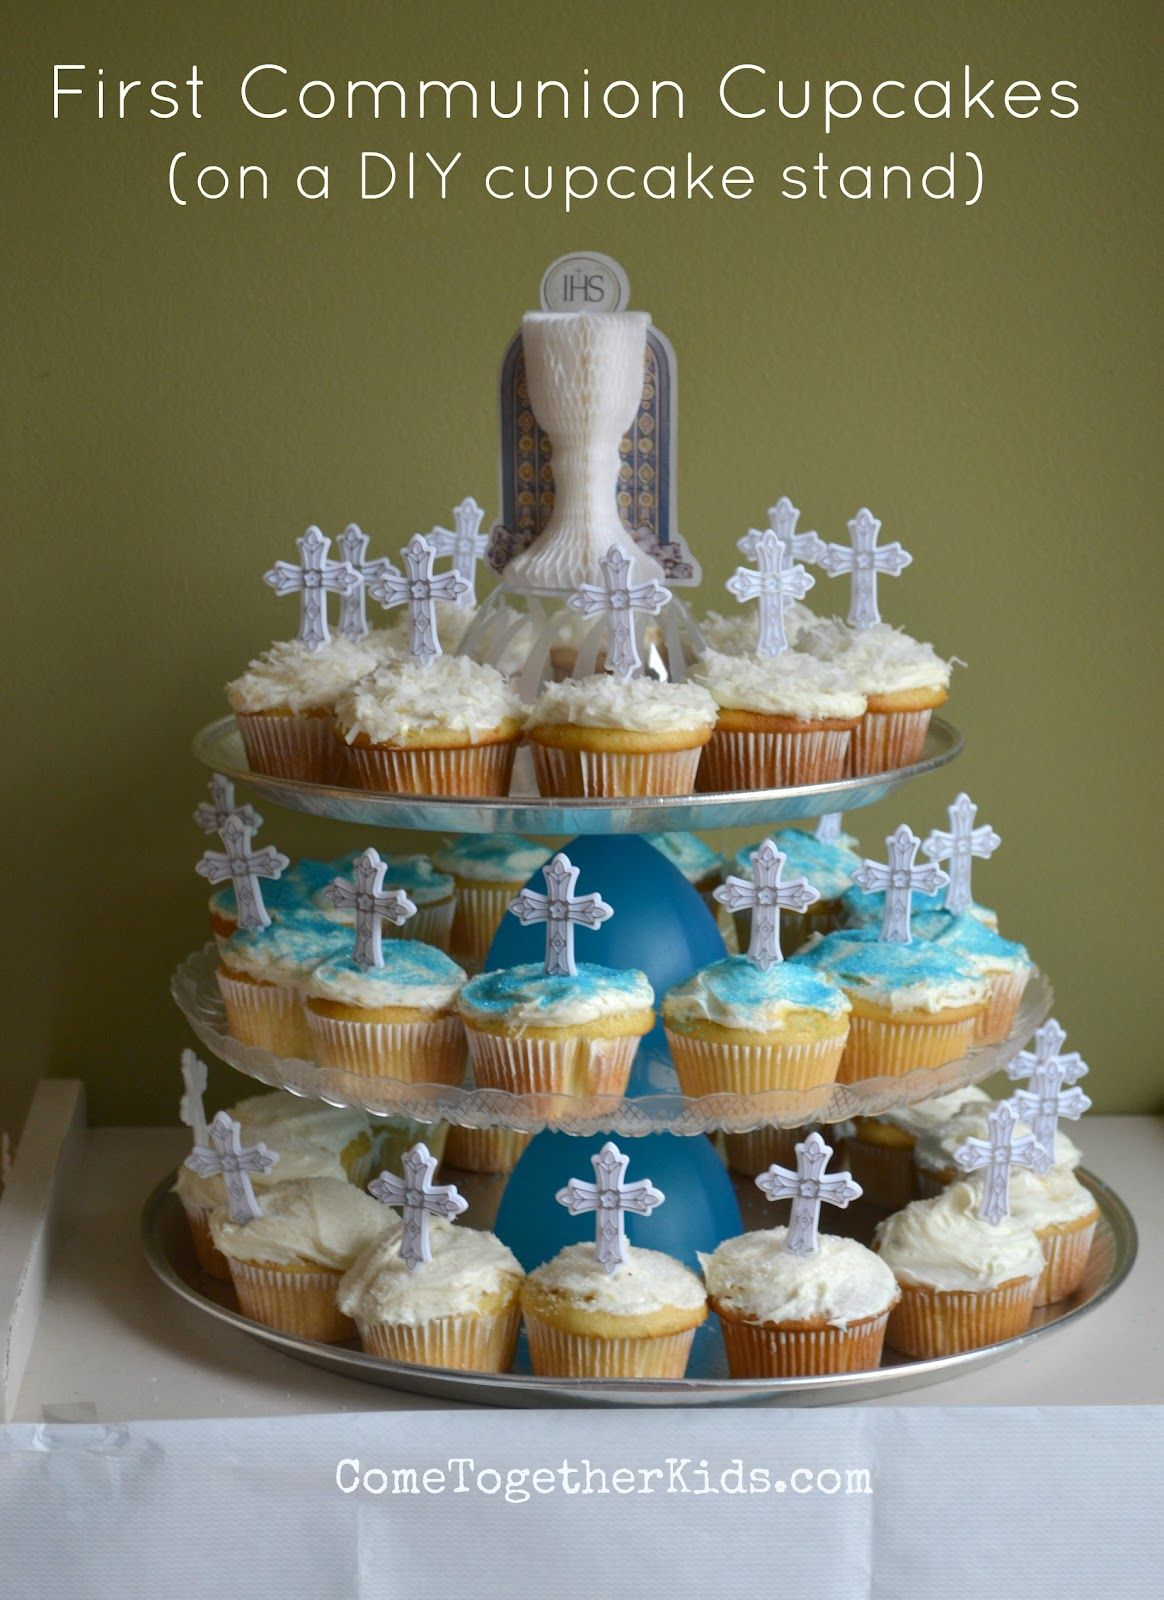 Come together kids first communion party ideas church for First communion craft ideas